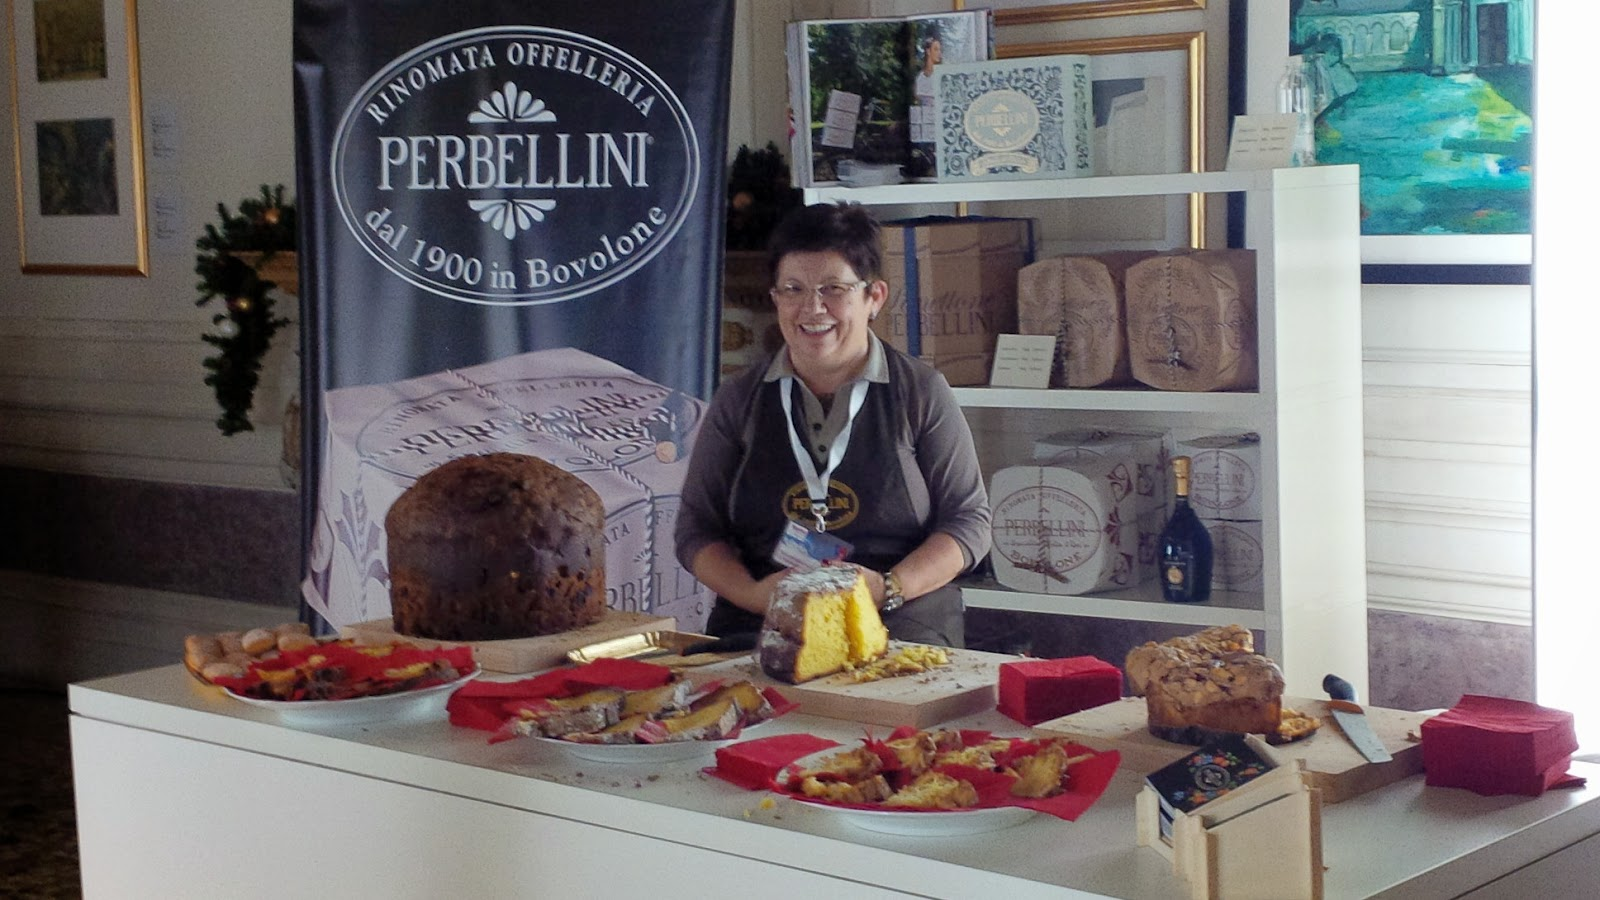 The booth of Perbellini at Taste of Christmas event